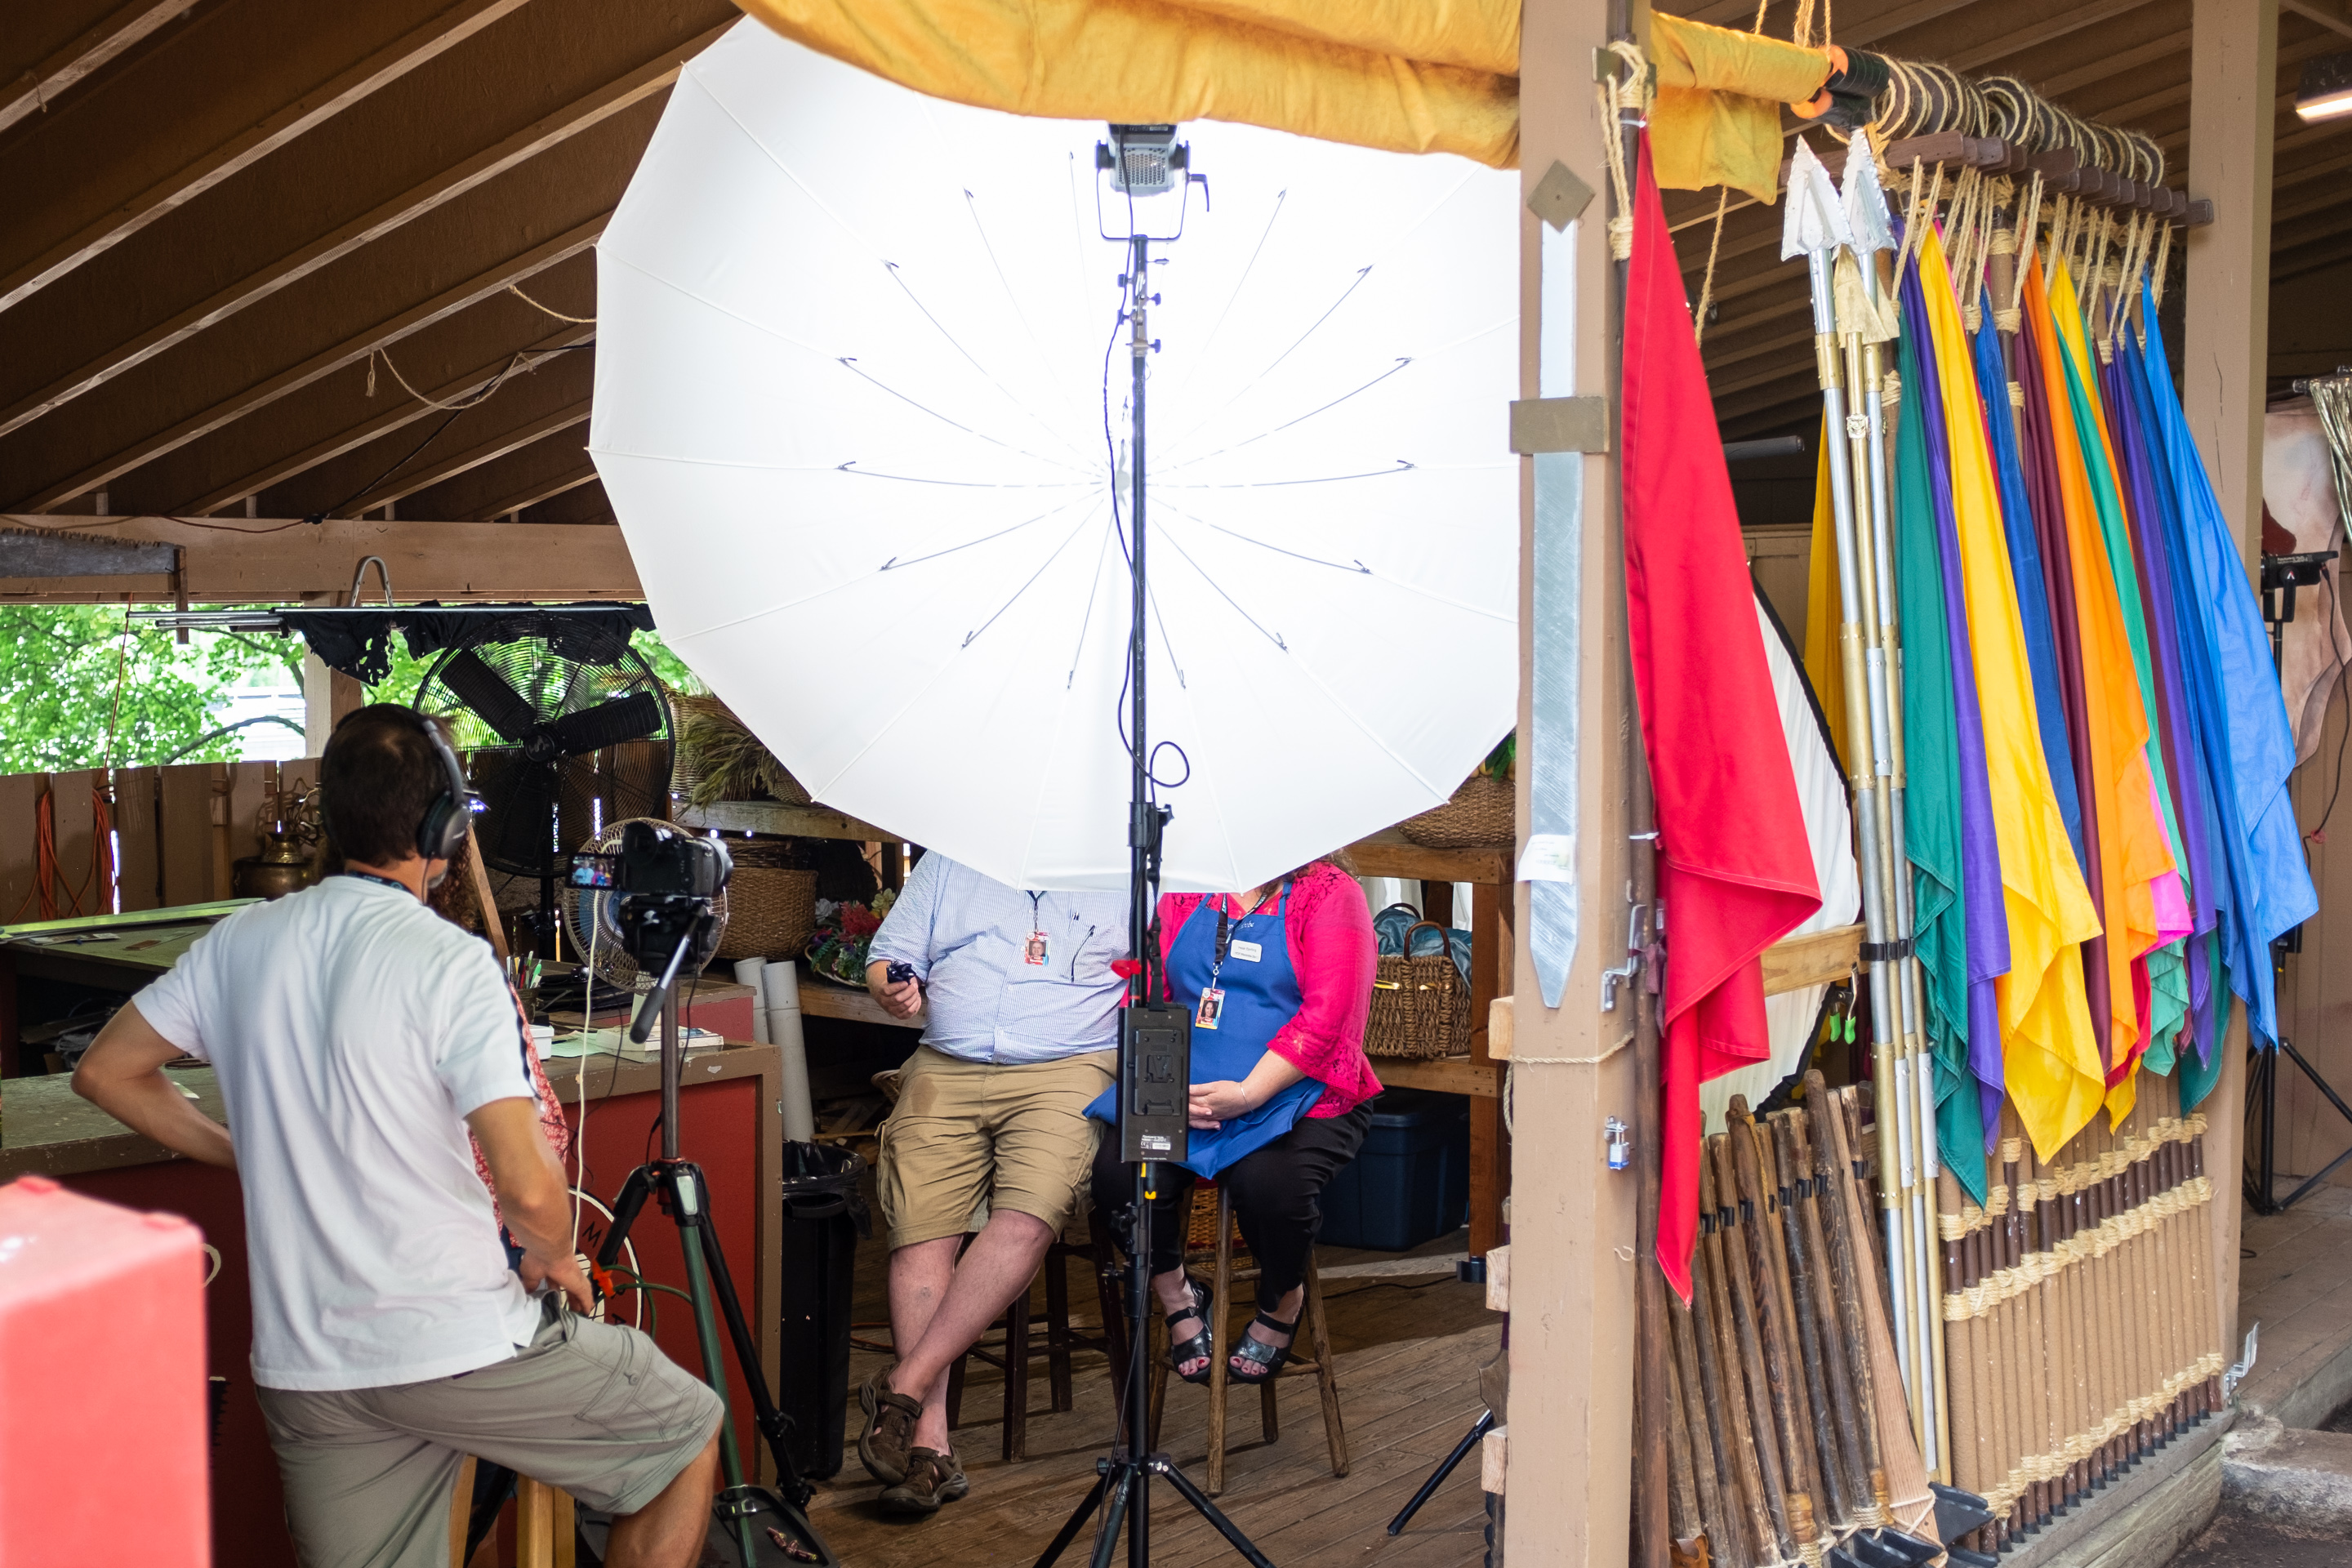 Interviews for behind the scenes of the HIll Cumorah Pagaent, Palmyra, NY, 2019